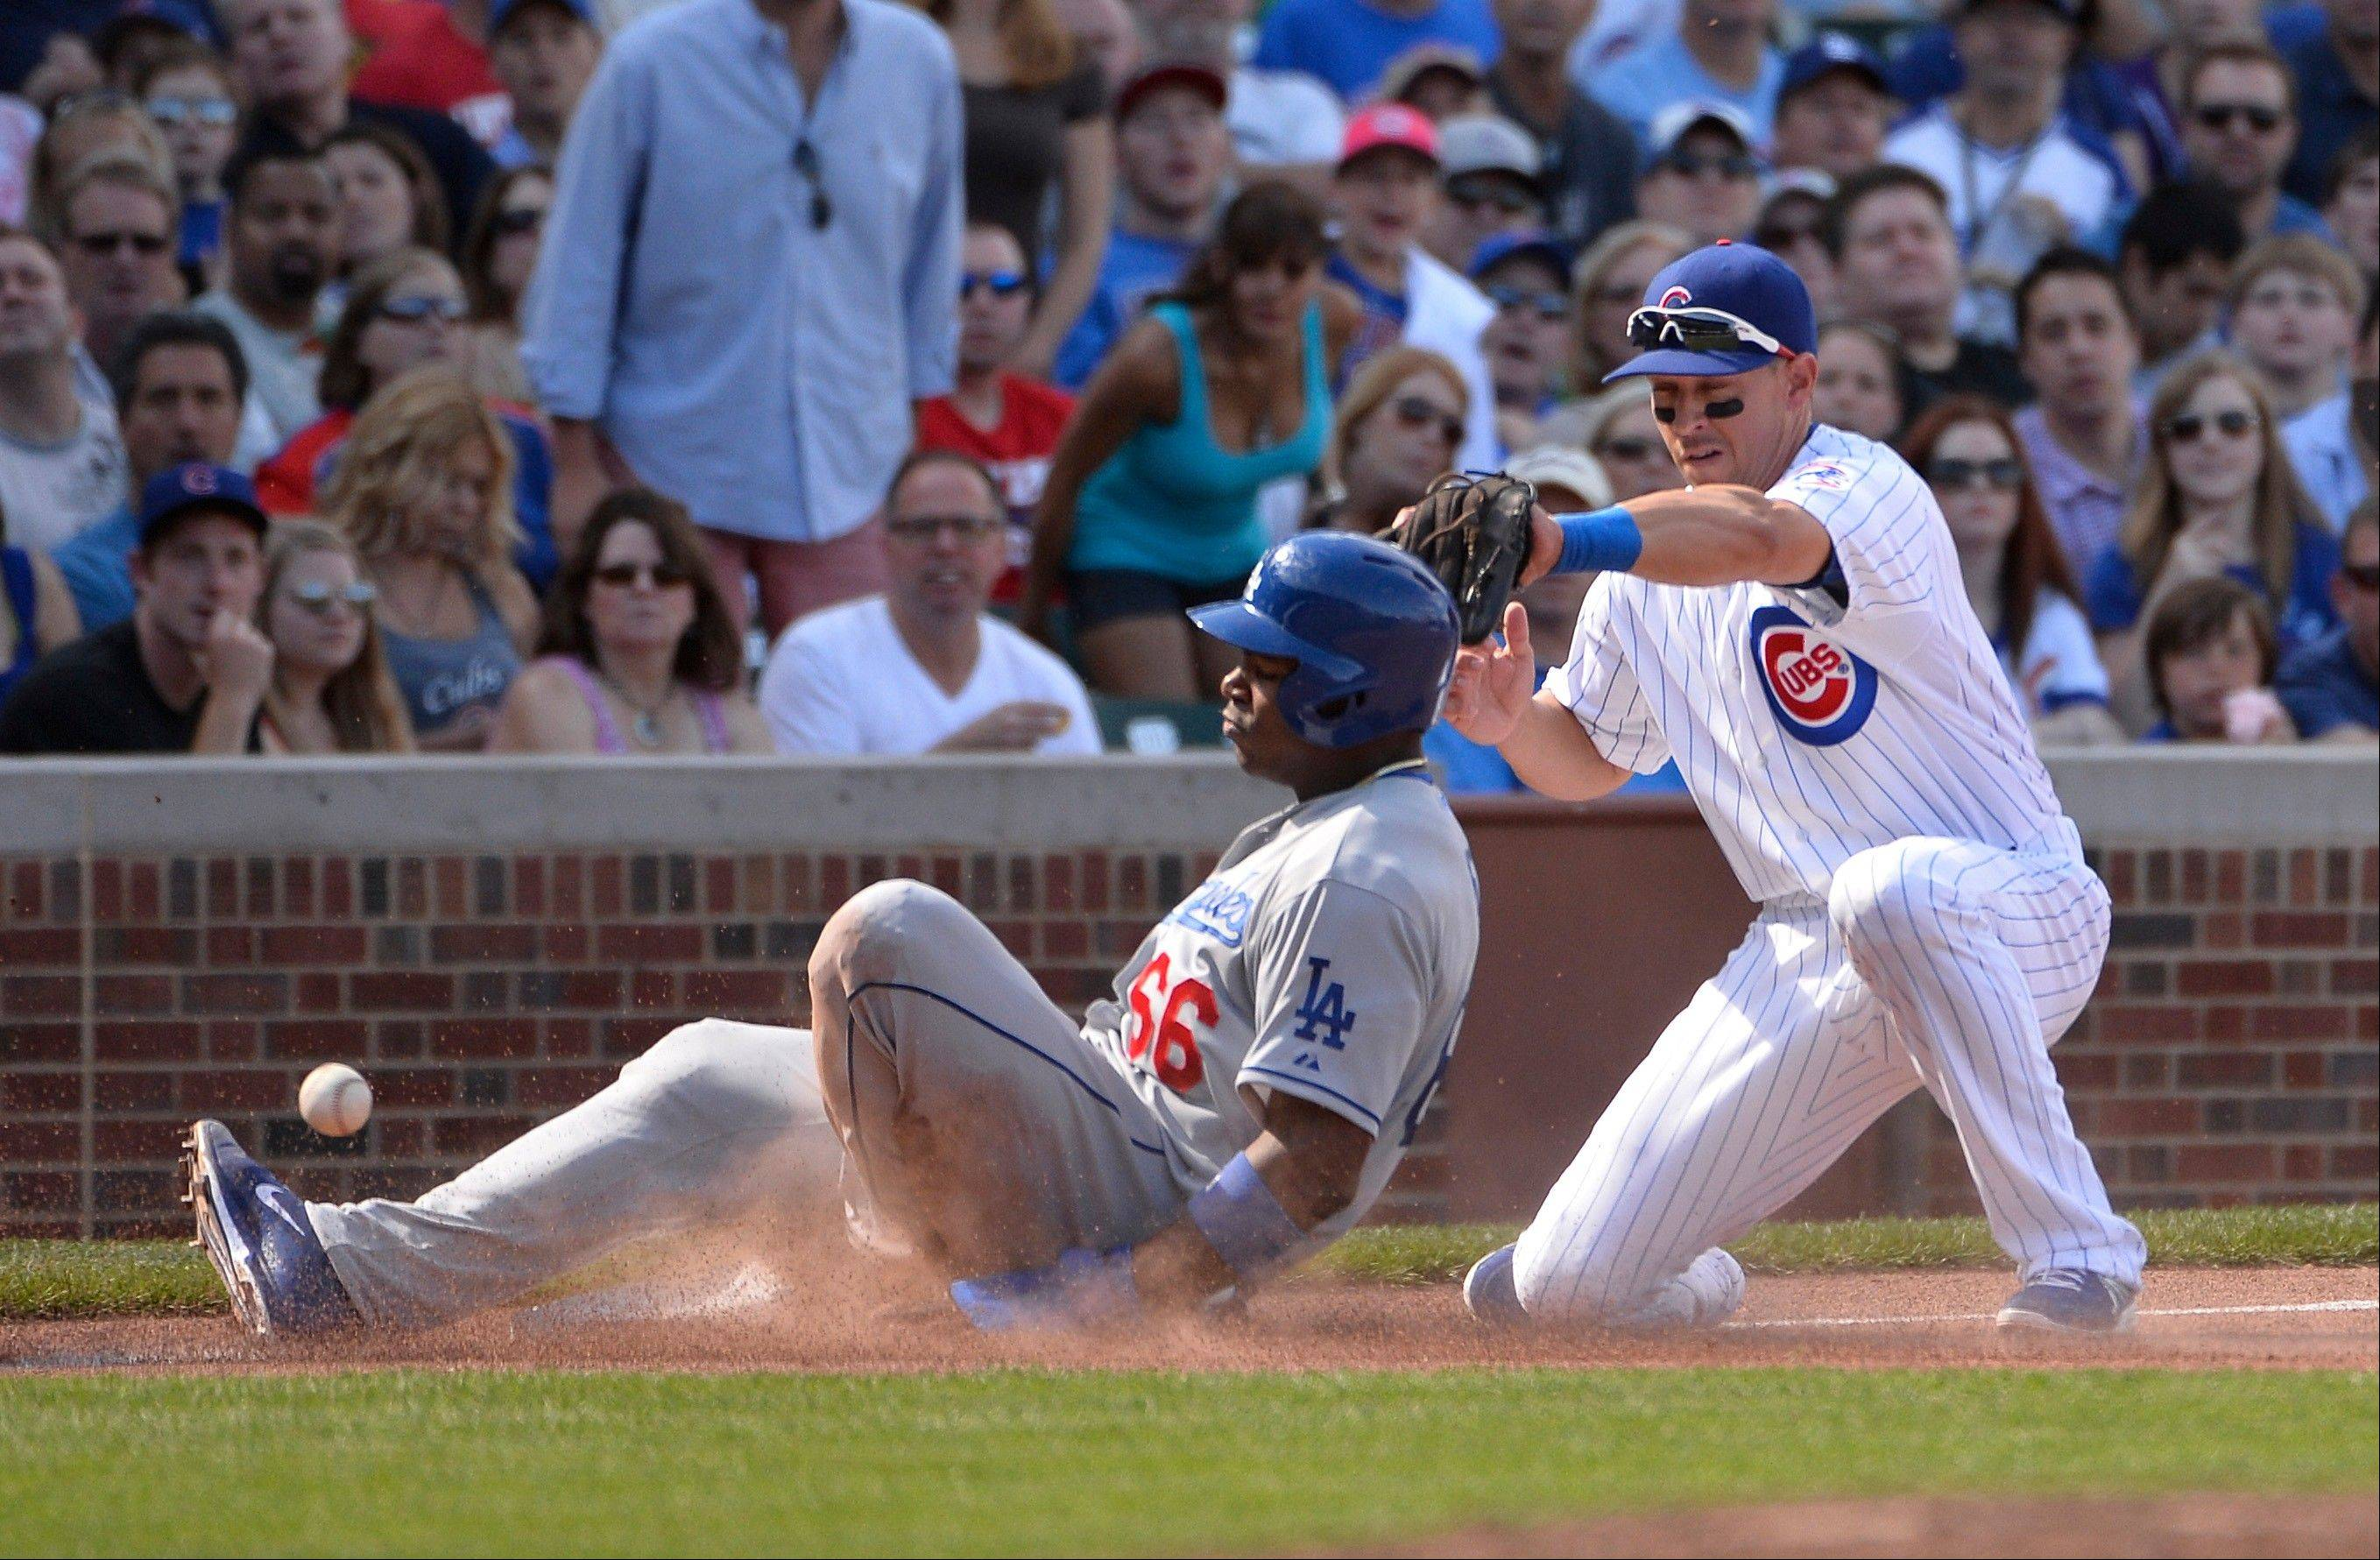 Los Angeles Dodgers� Yasiel Puig, left, slides safely into third base, advancing from first base on a single hit by teammate Andre Ethier, as Chicago Cubs third baseman Cody Ransom tries to make a play during the third inning of a baseball game, Saturday, Aug. 3, 2013, in Chicago. (AP Photo/Brian Kersey)